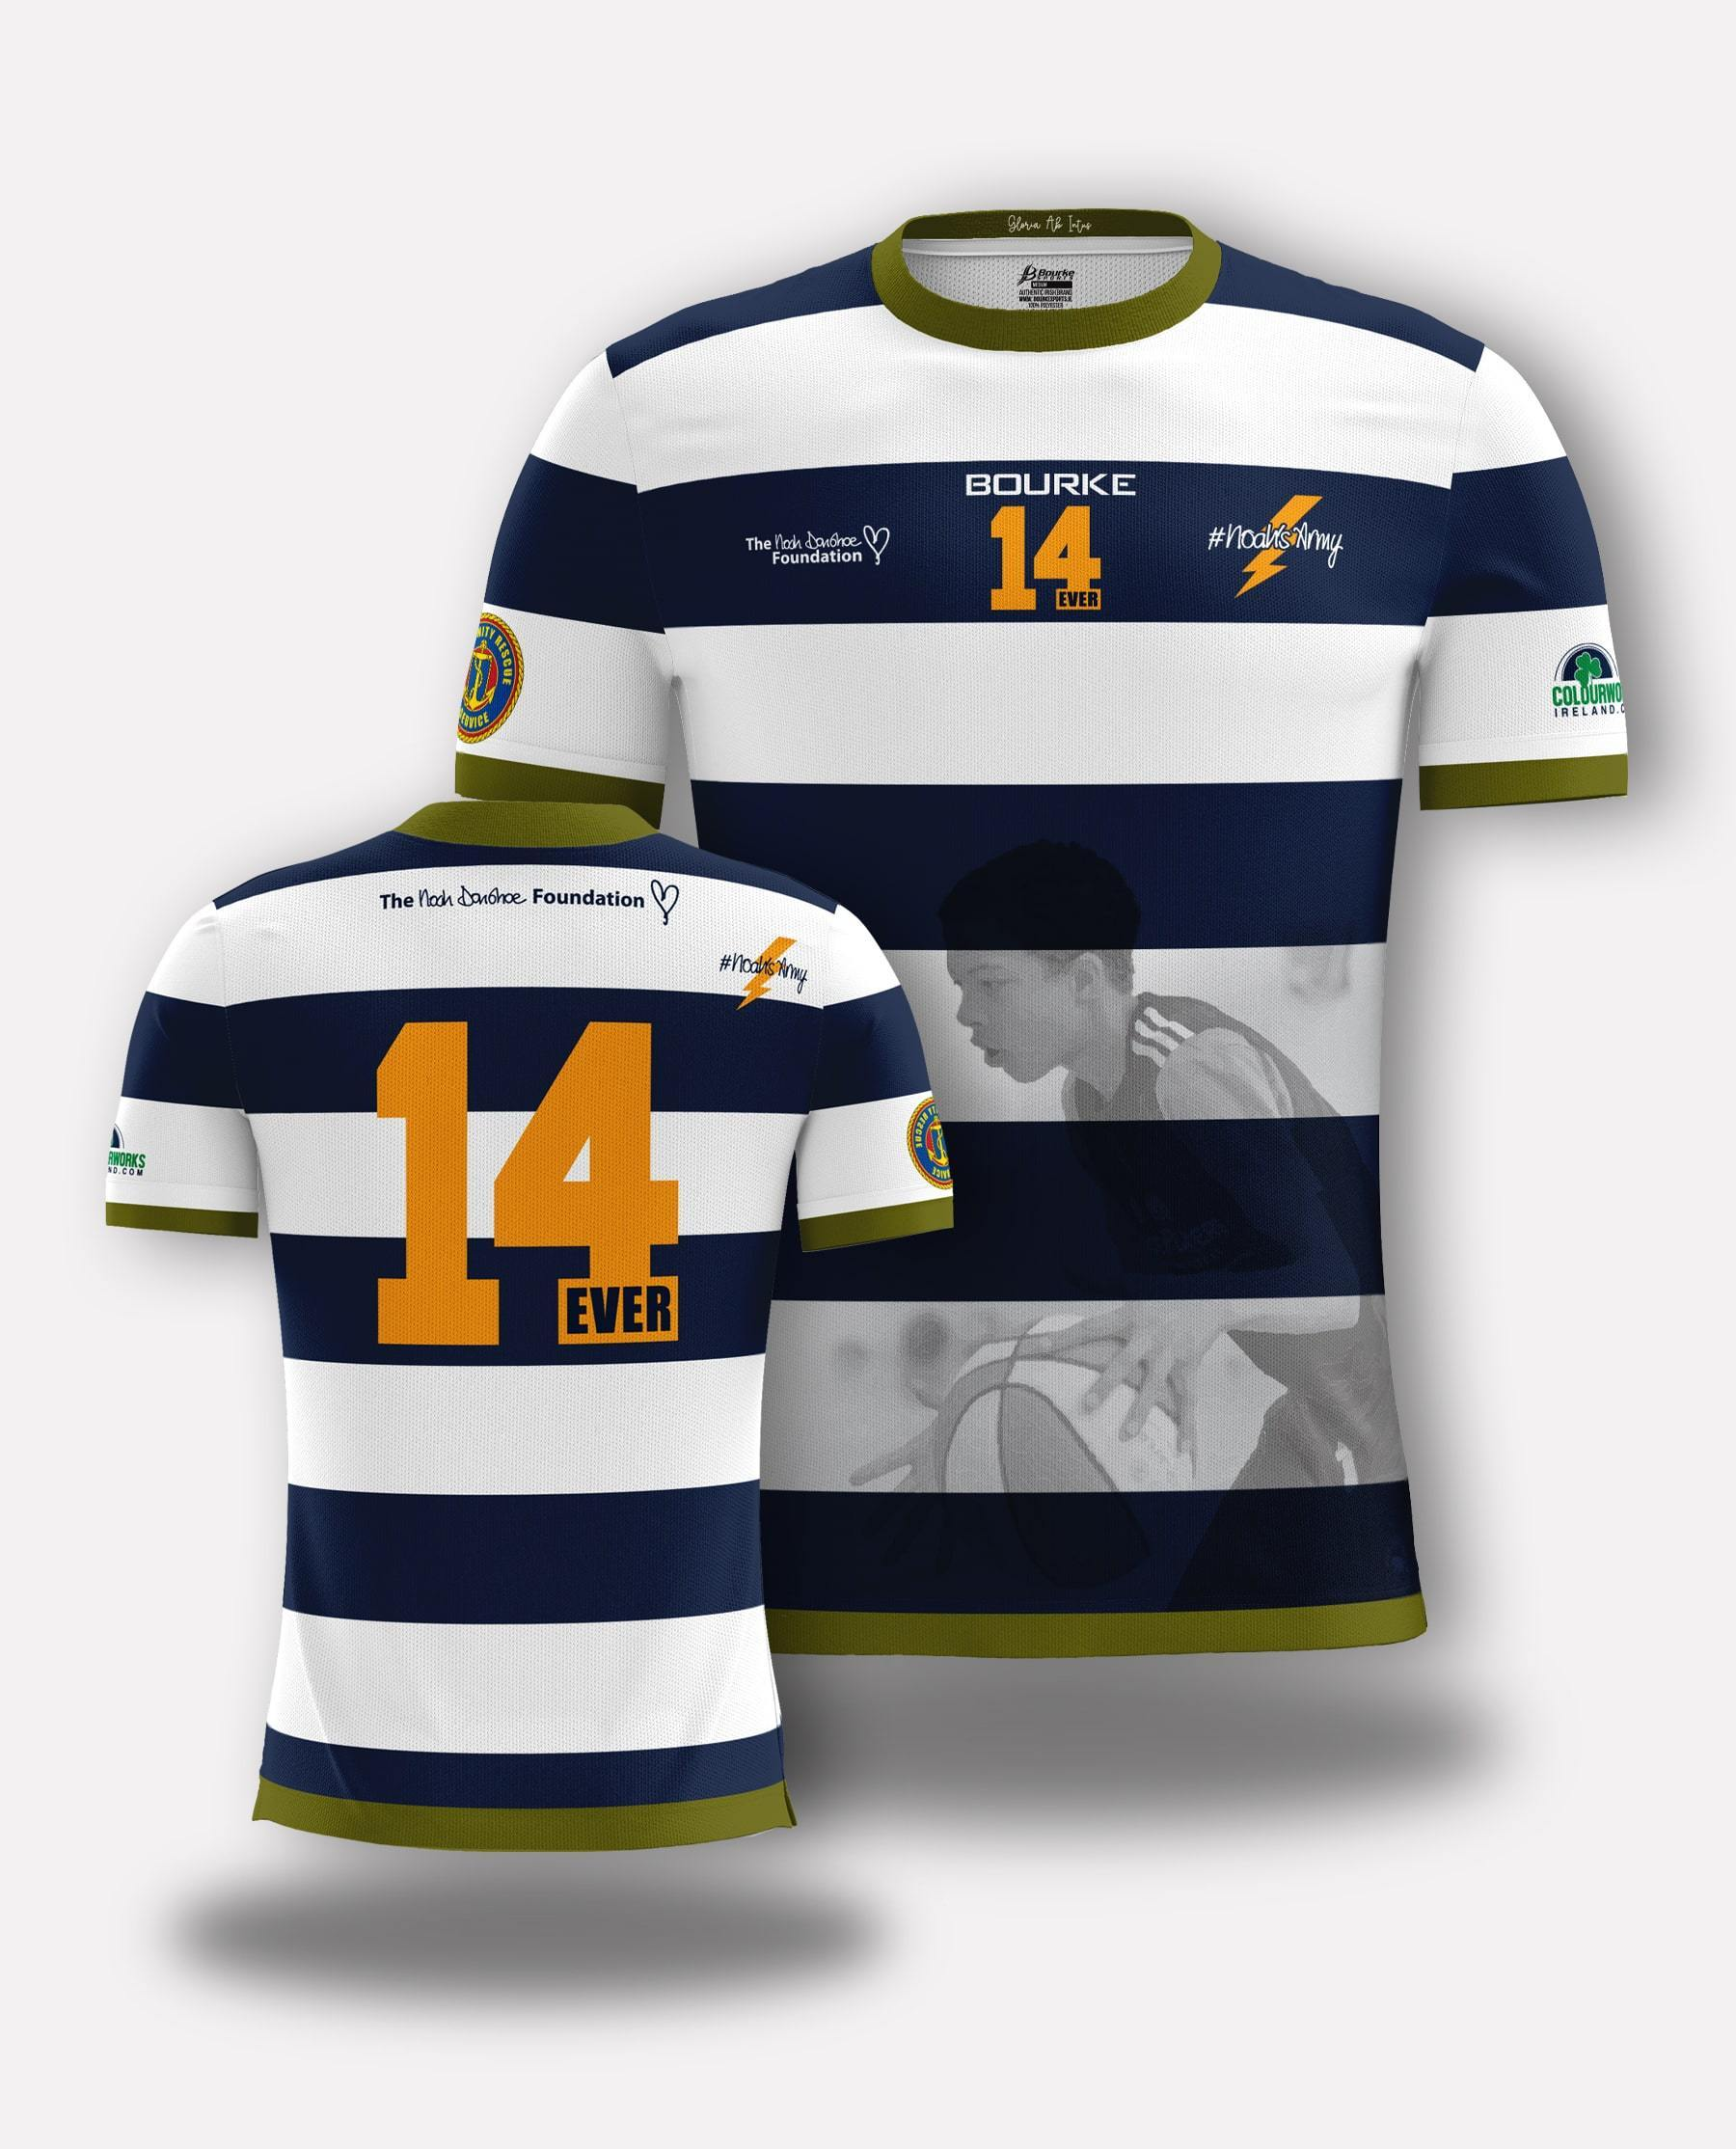 Noah Donohoe Foundation Jersey